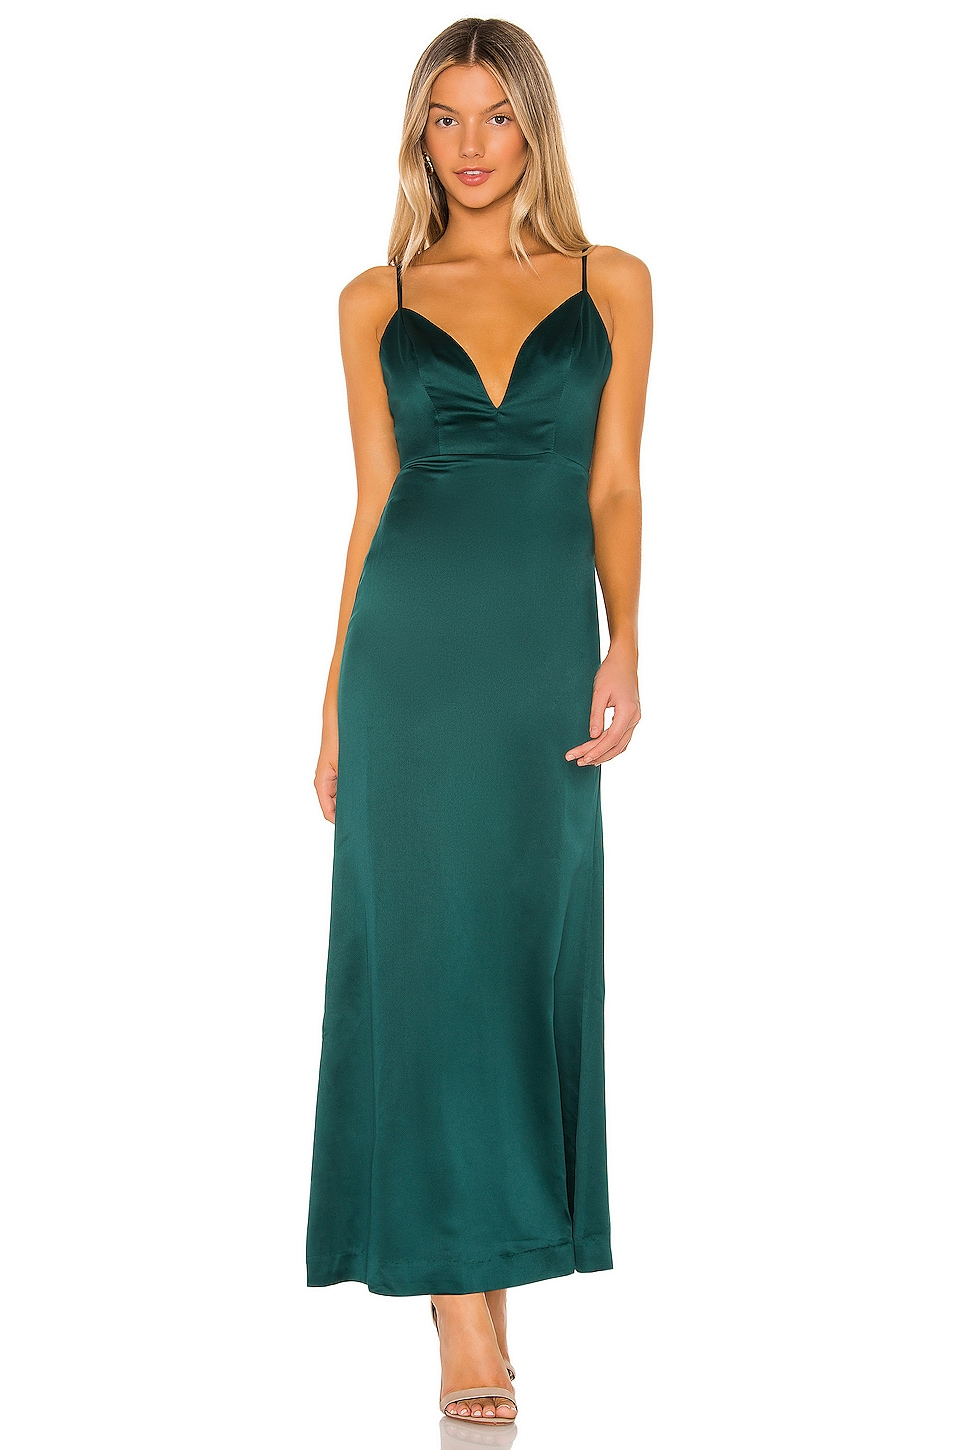 NBD Corona Gown in Emerald Green